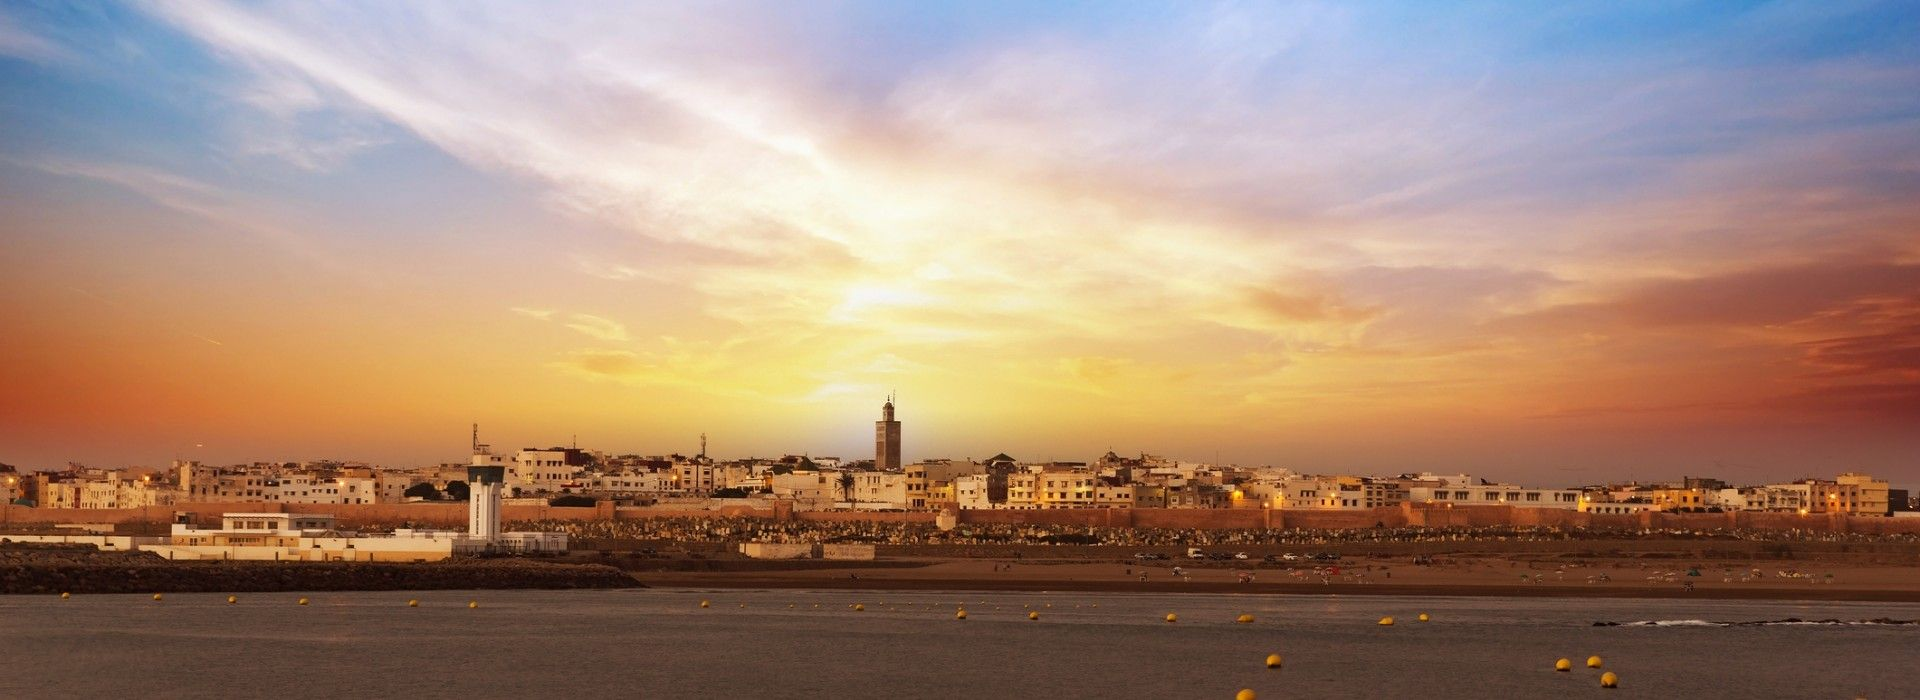 Countryside and village visits Tours in Marrakech